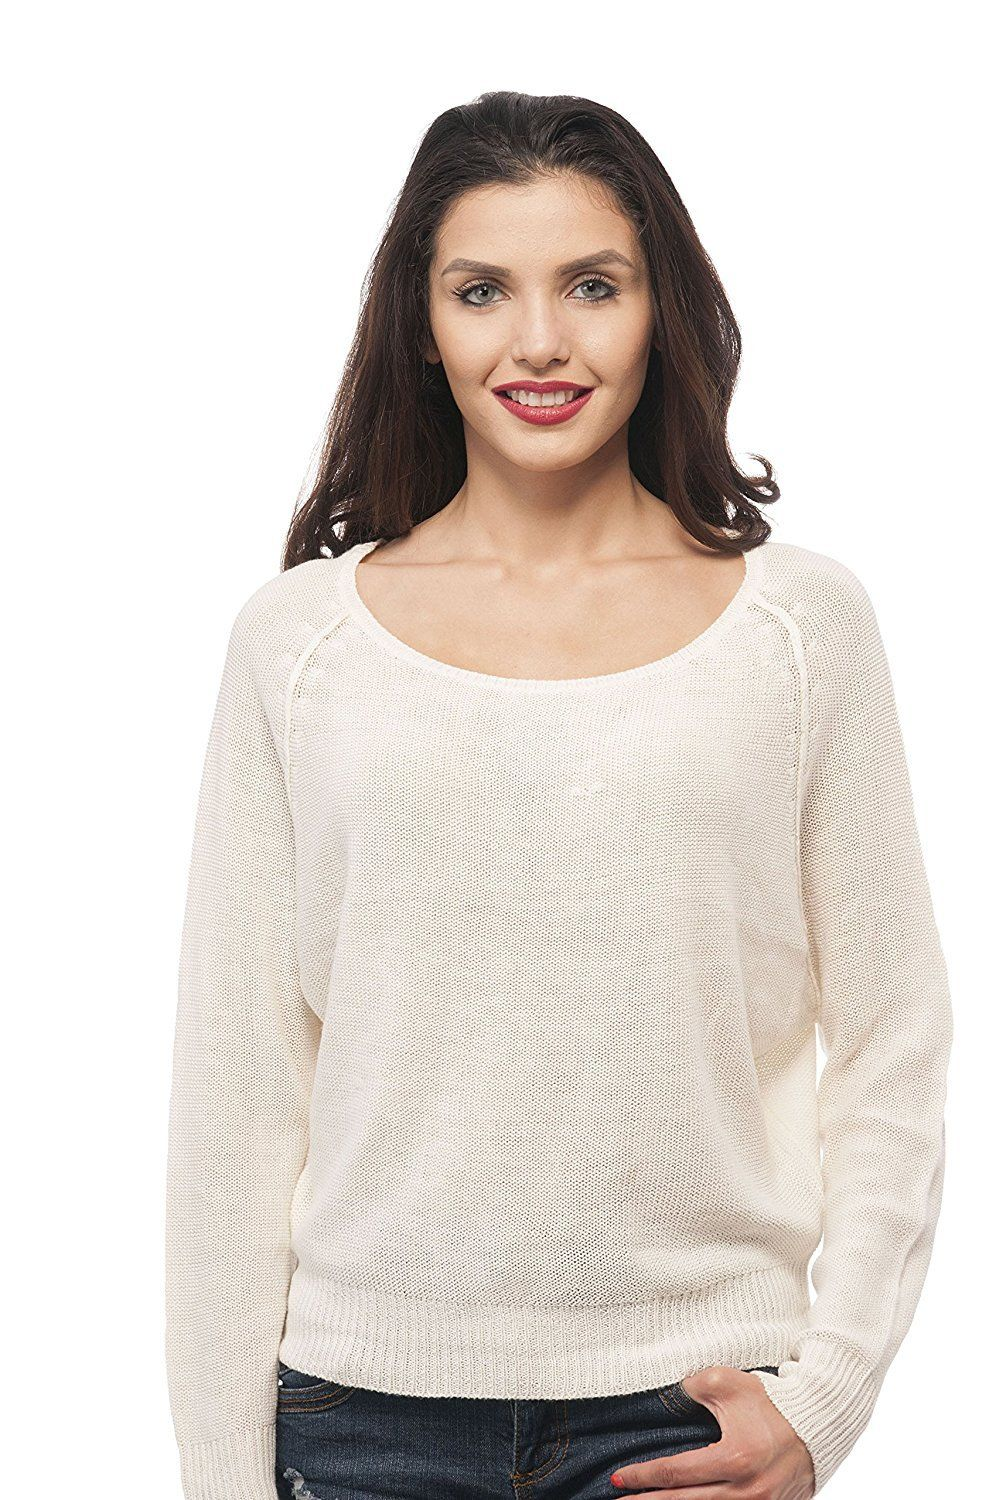 b66bcdbacb61a7 Hollywood Star Fashion Scoop Neck Dolmin Top Sweater | Products ...